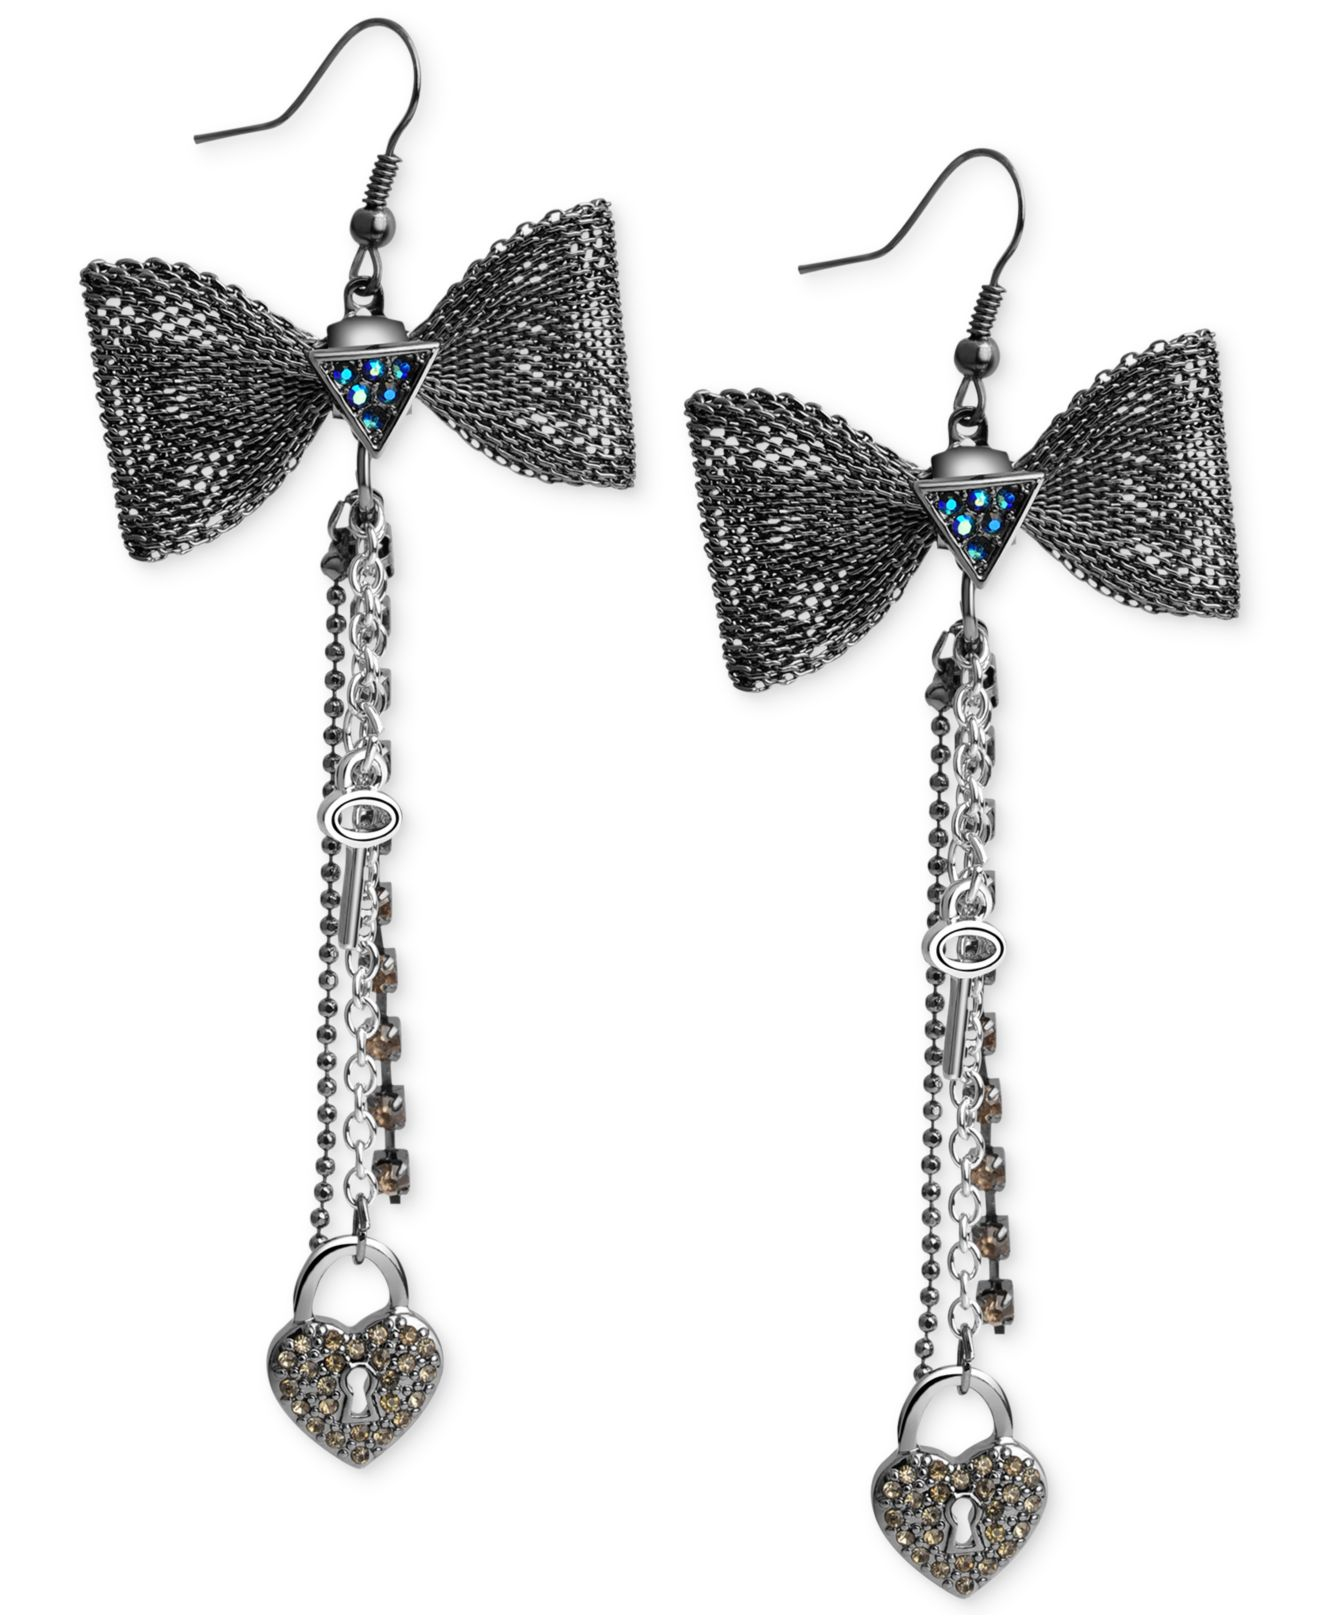 Lyst - Guess Two-tone Heart And Bow Chain Drop Earrings